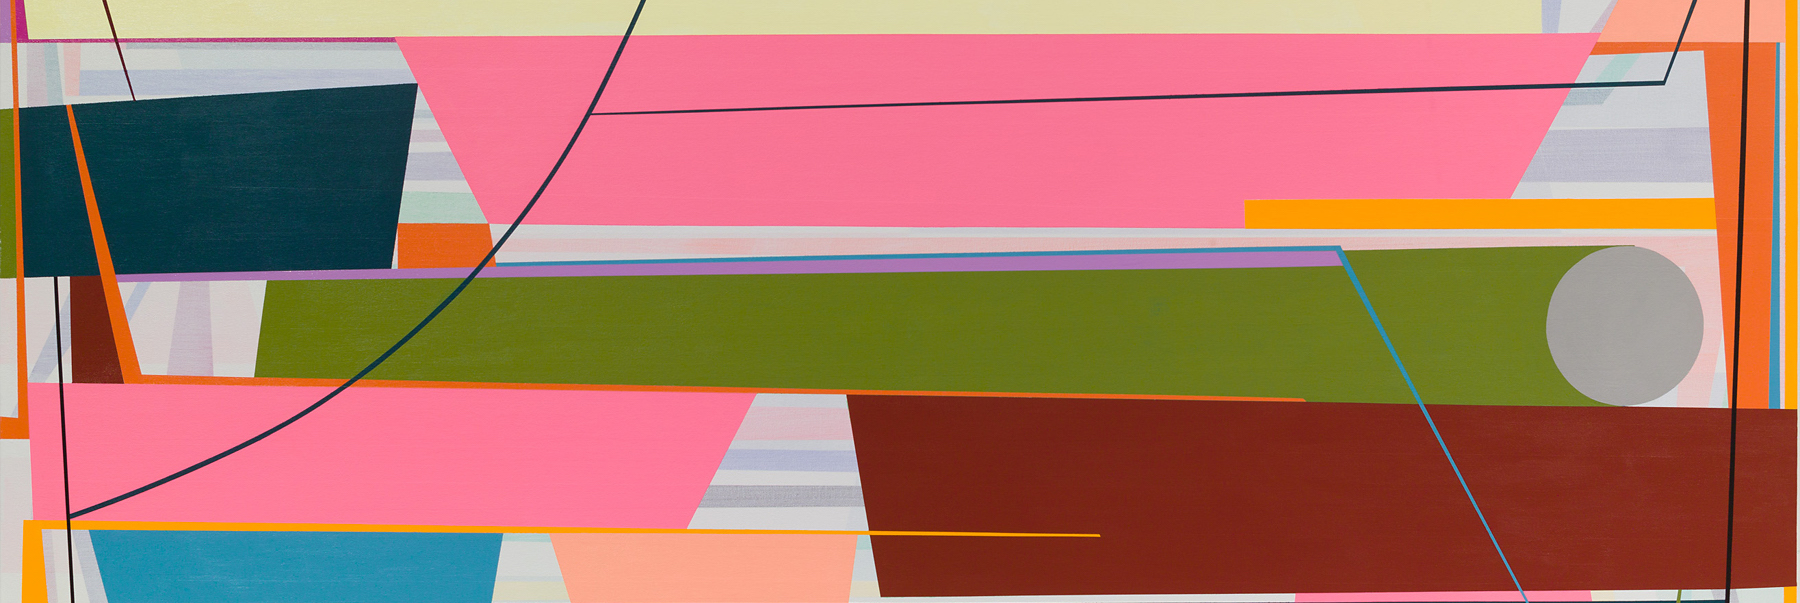 (detail) Gary Petersen, Spin Out, 2016, acrylic on canvas, 48 x 84 inches (courtesy of the artist and McKenzie Fine Art, New York)